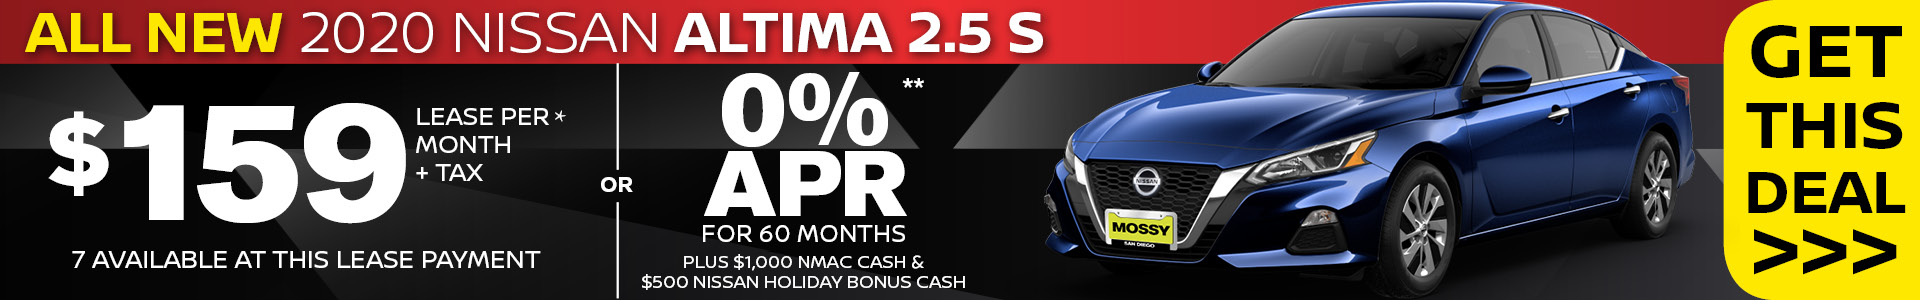 Mossy Nissan - Nissan Altima $159 Lease SRP